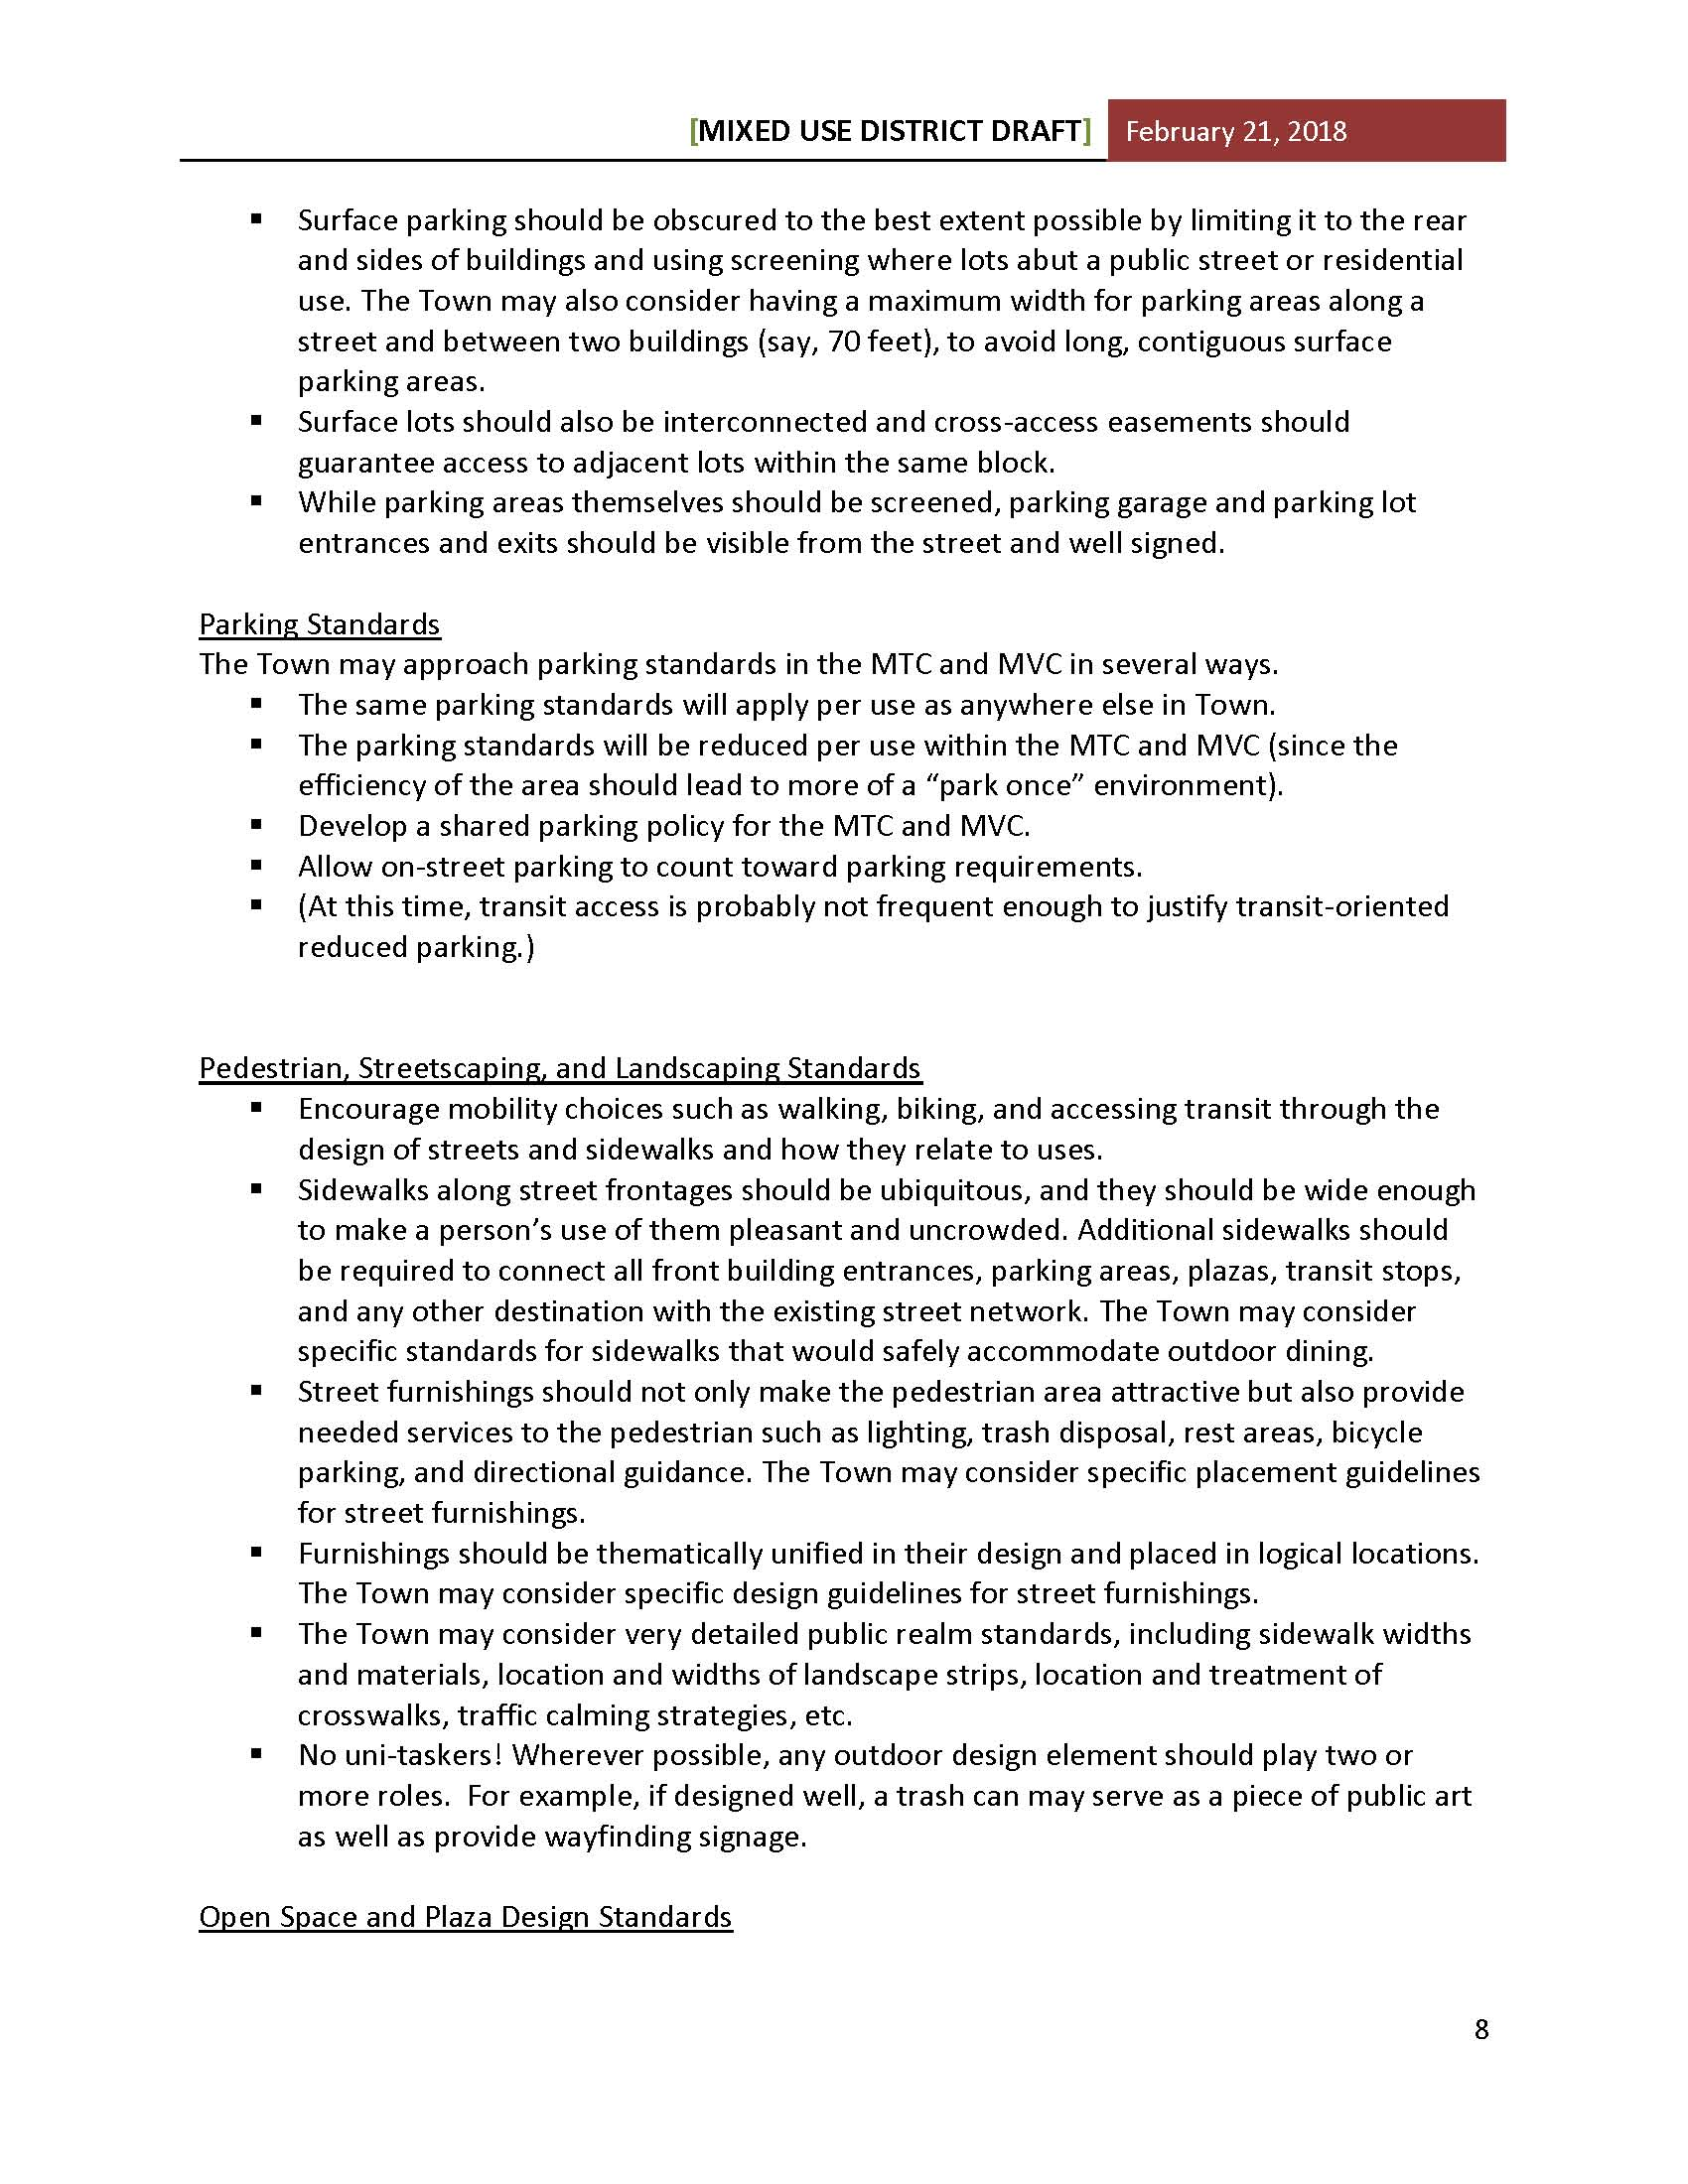 Mixed-Use Descriptions and Dimensions - Draft - 2-21-18_Page_8.jpg